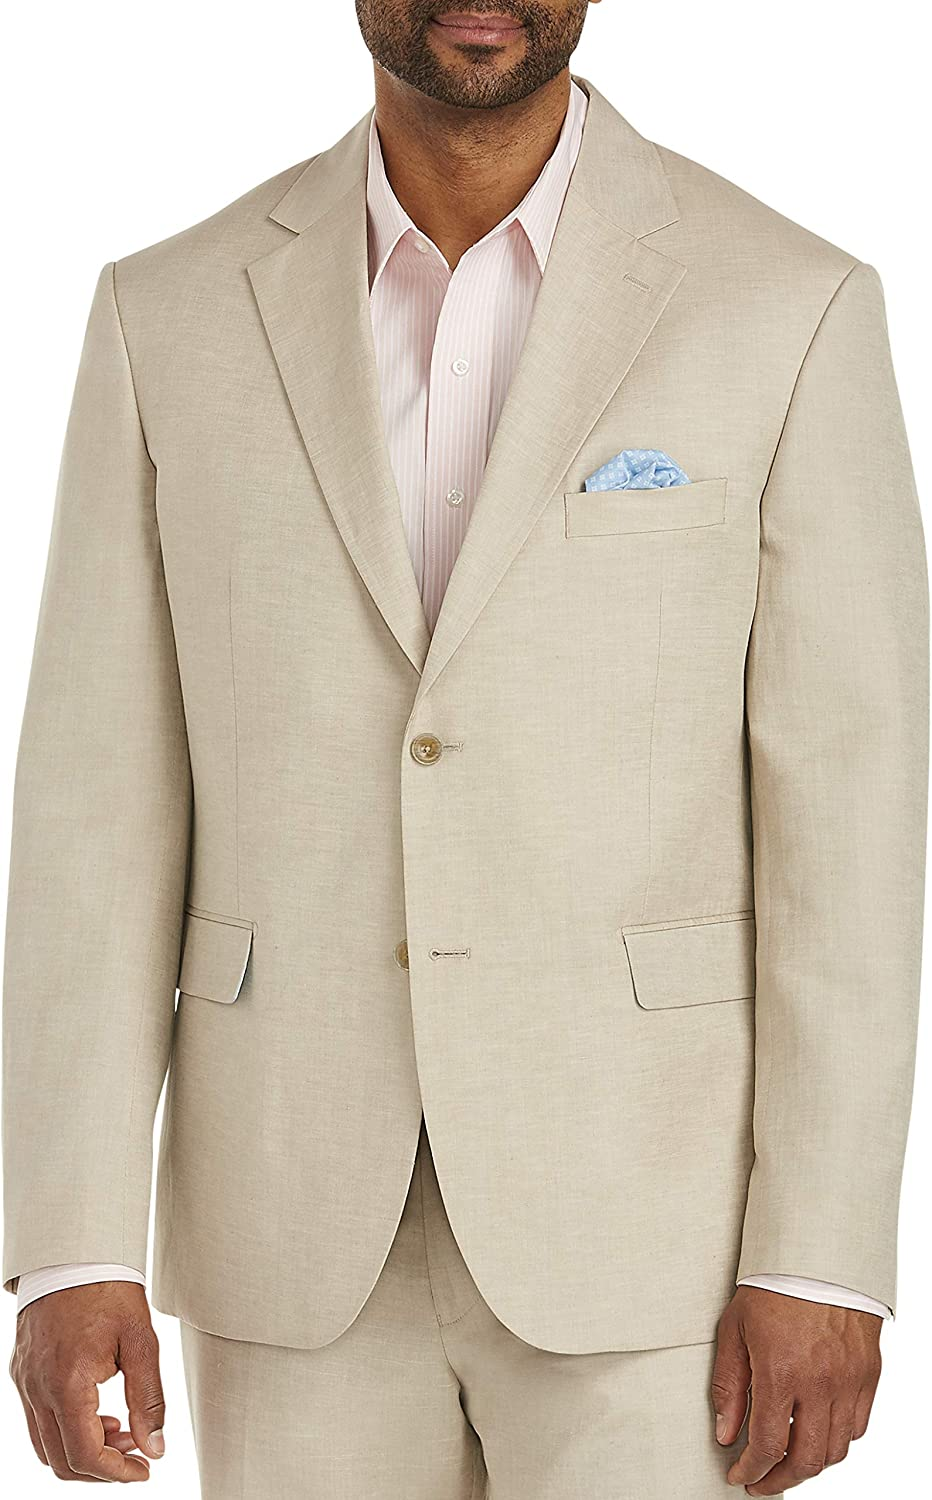 Oak Hill by DXL Big and Tall Jacket-Relaxer Linen-Blend Suit Jacket, Flax